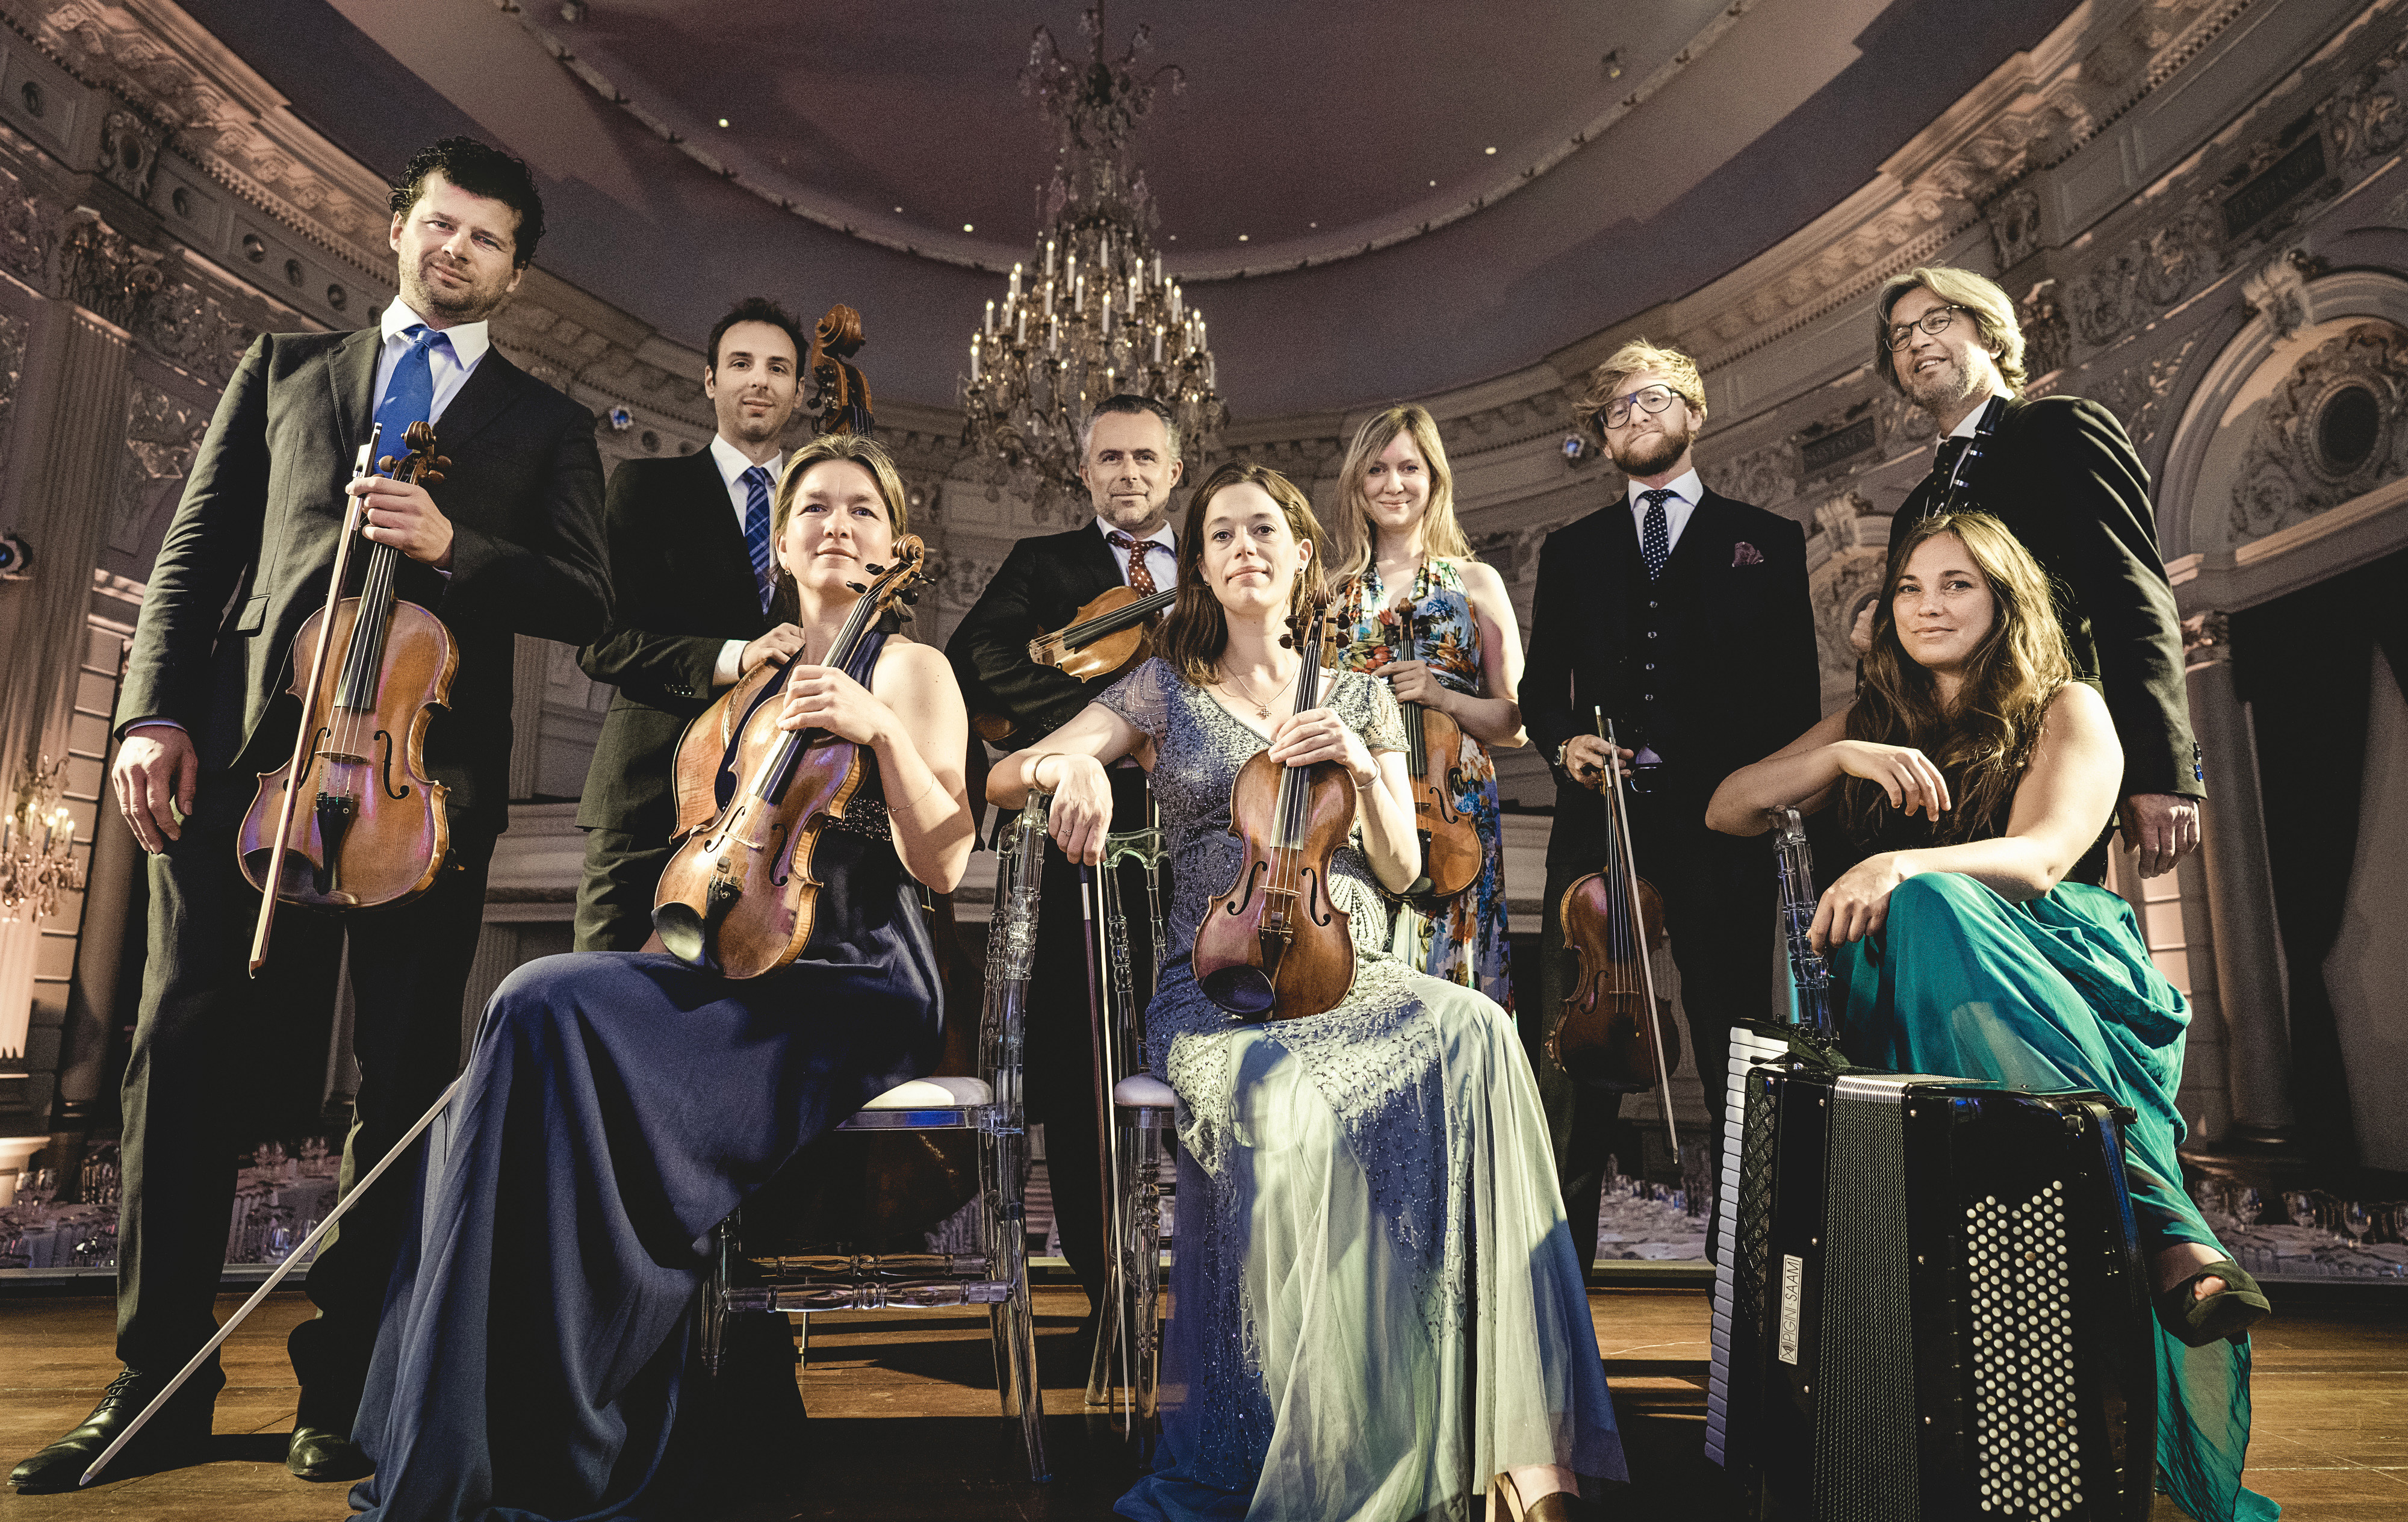 Maui Debut of Acclaimed Chamber Music Ensemble Camerata RCO, Jan. 16